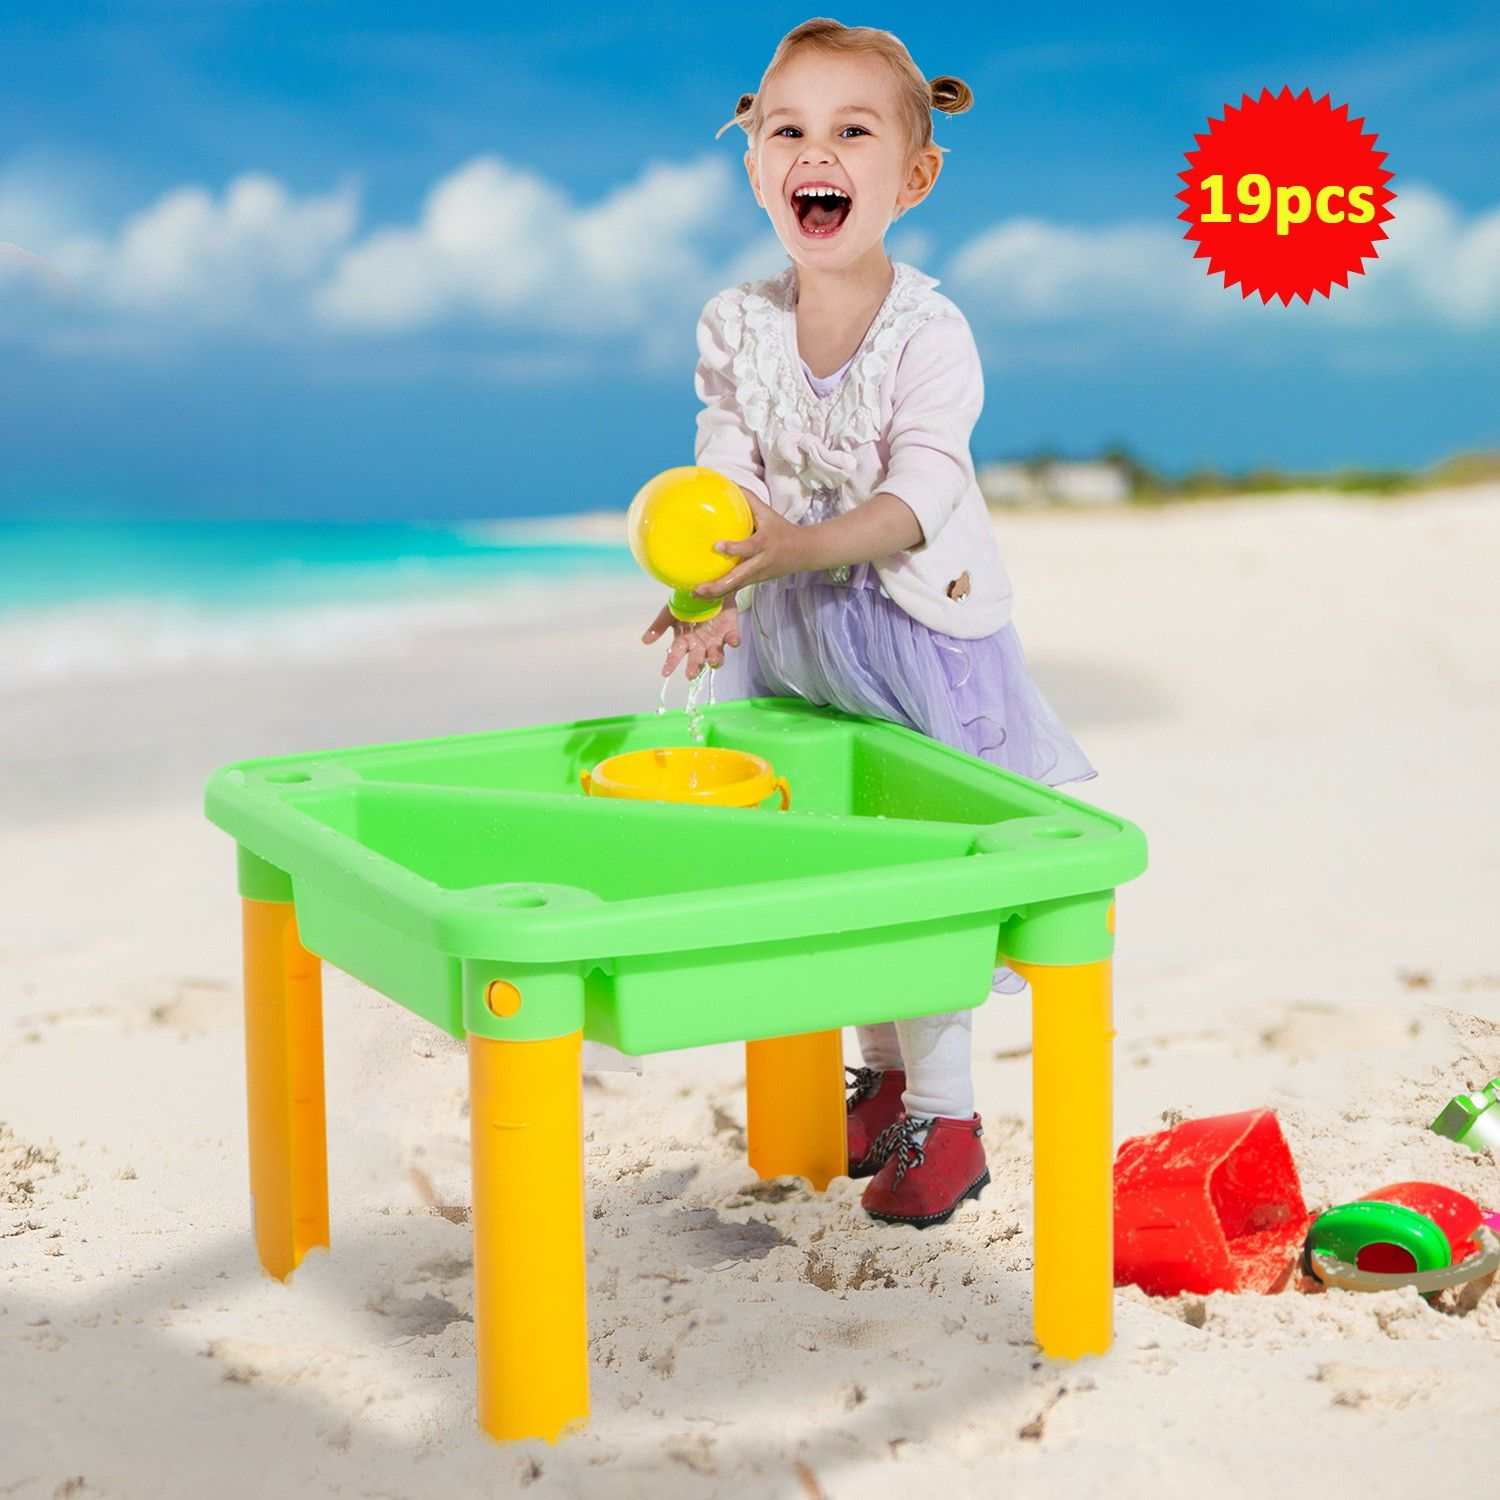 Sandboxes Toys Games Homcom Sand And Water Table With Beach Play Set For Kids Children Garden Toys 19pcs